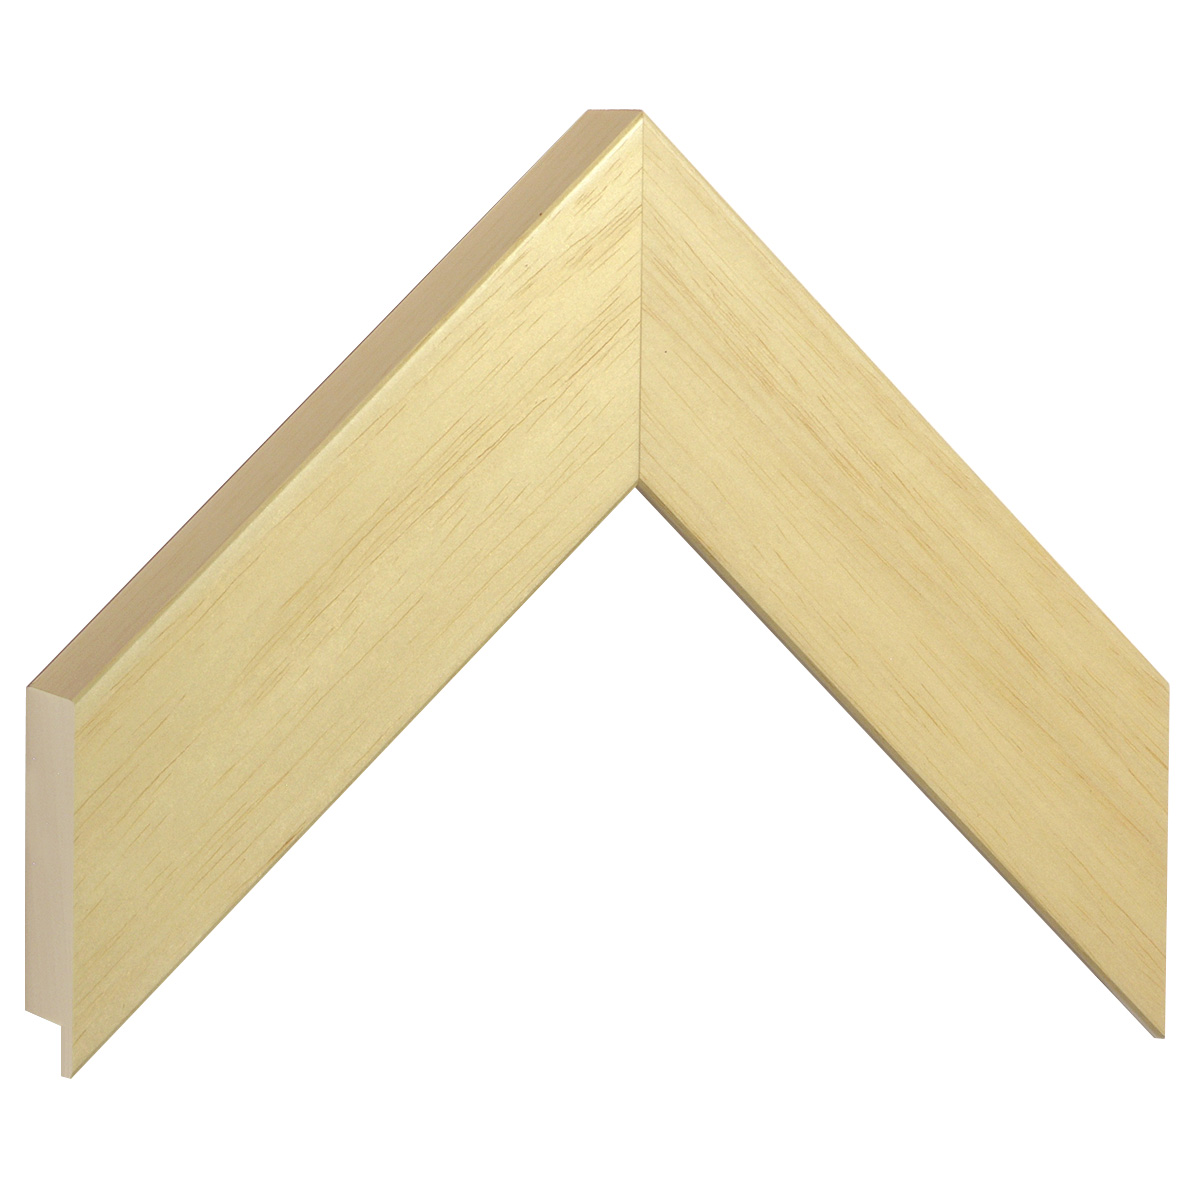 Moulding ayous, width 50mm height 32 - natural